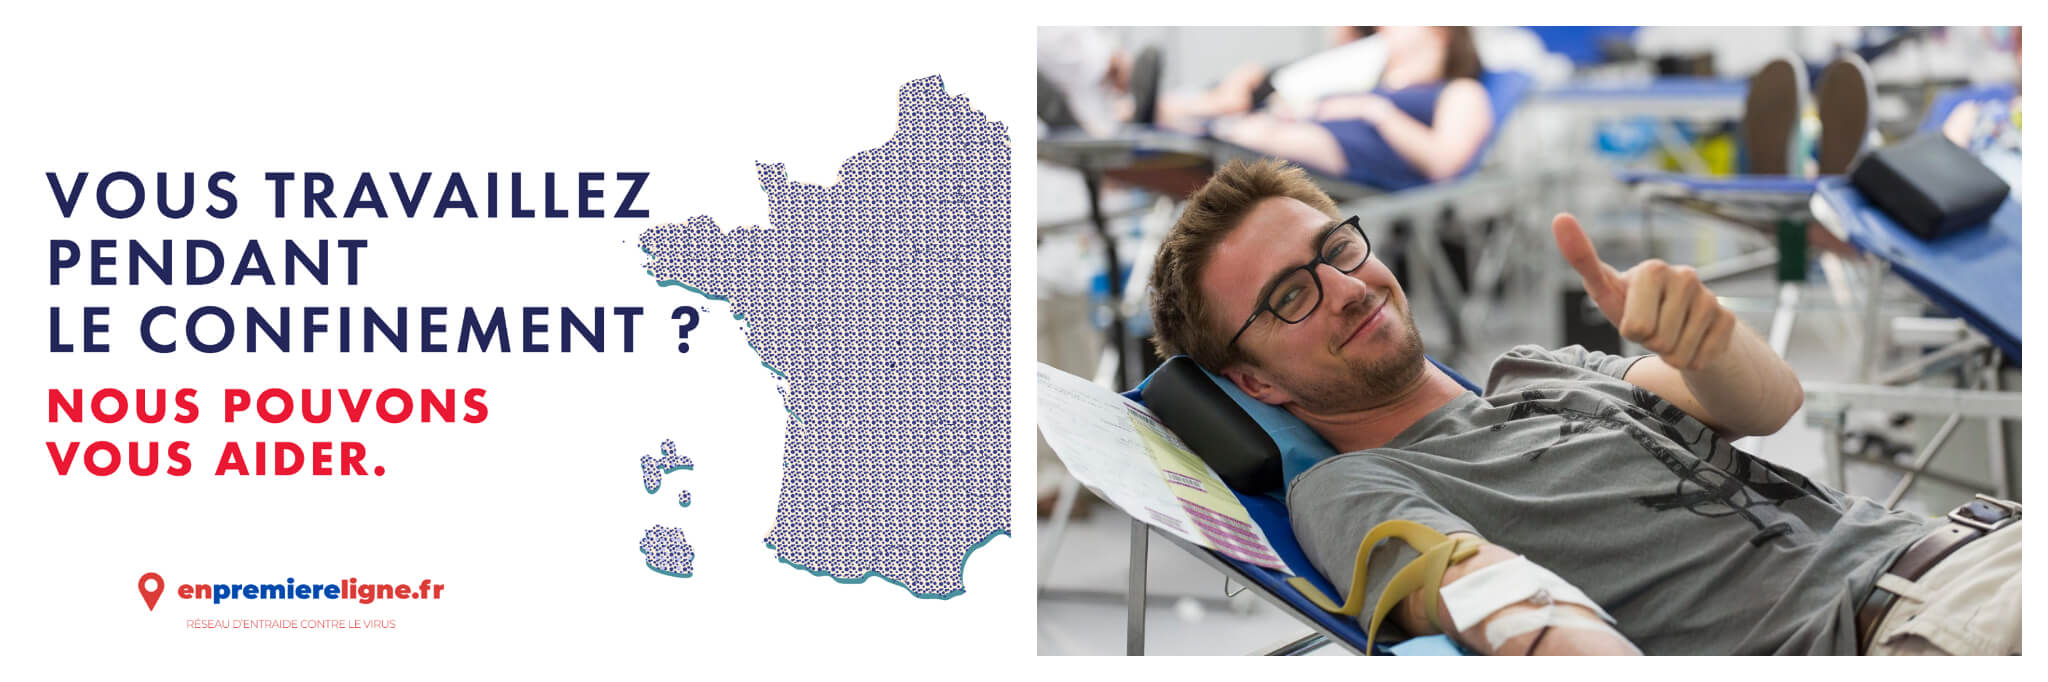 """Left: An advertisement from En Premiere Ligne reads, """"Vous travaillez pendant le confinement? Nous pouvons vous aider,"""" in english, """"Are you working during the confinement? We can help you."""" Right: A man in a light gray t-shirt and glasses lays down while he donates blood, he smiles and gestures a thumbs-up at the camera"""